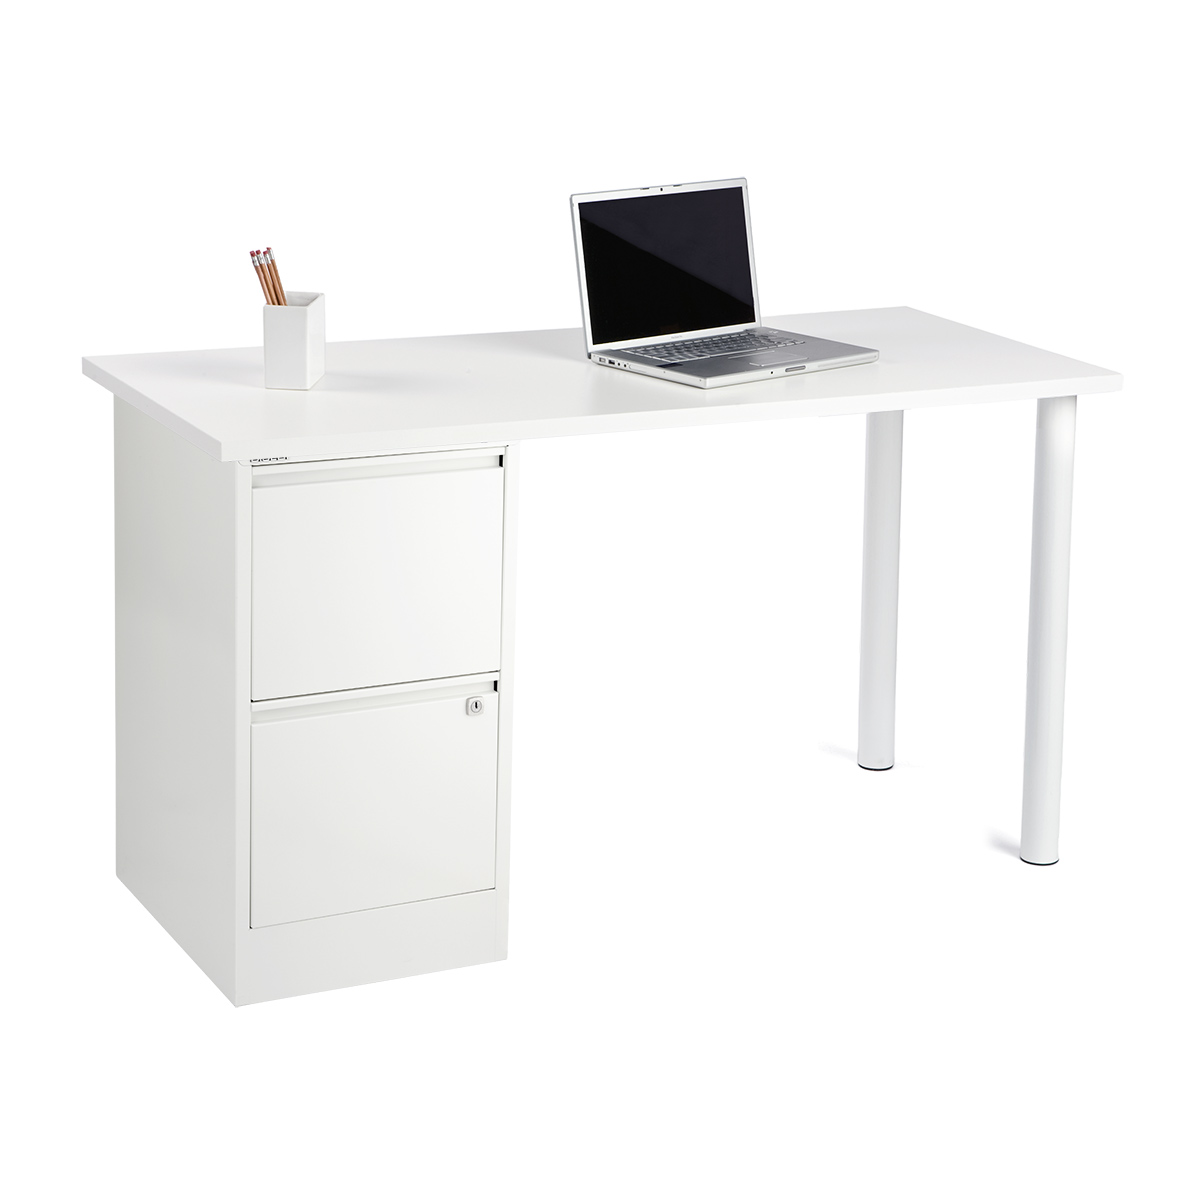 Desk Design custom desk - design your own customized desk | the container store